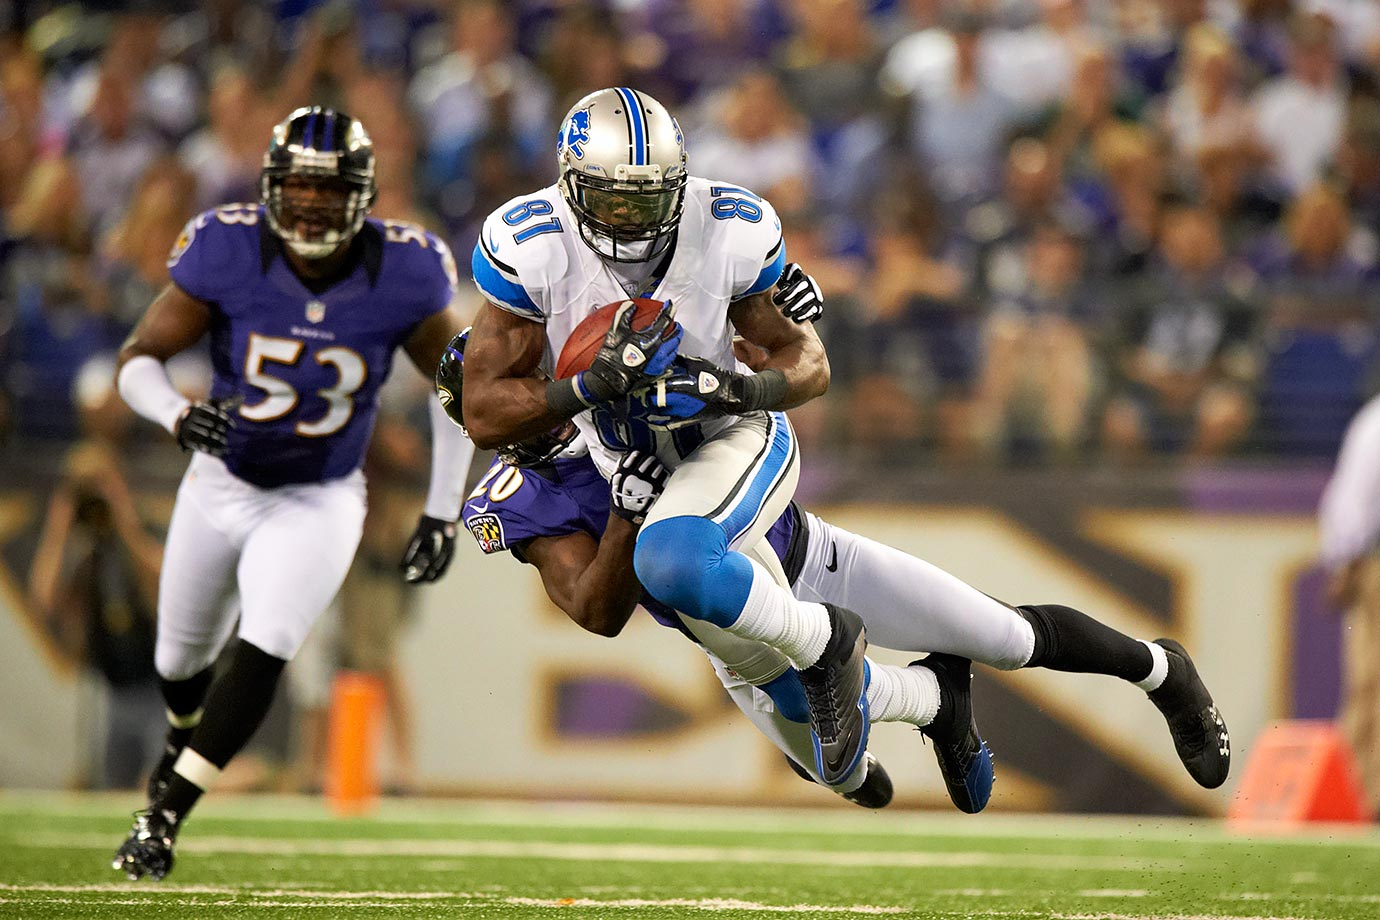 Aug. 17, 2012 — Detroit Lions vs. Baltimore Ravens